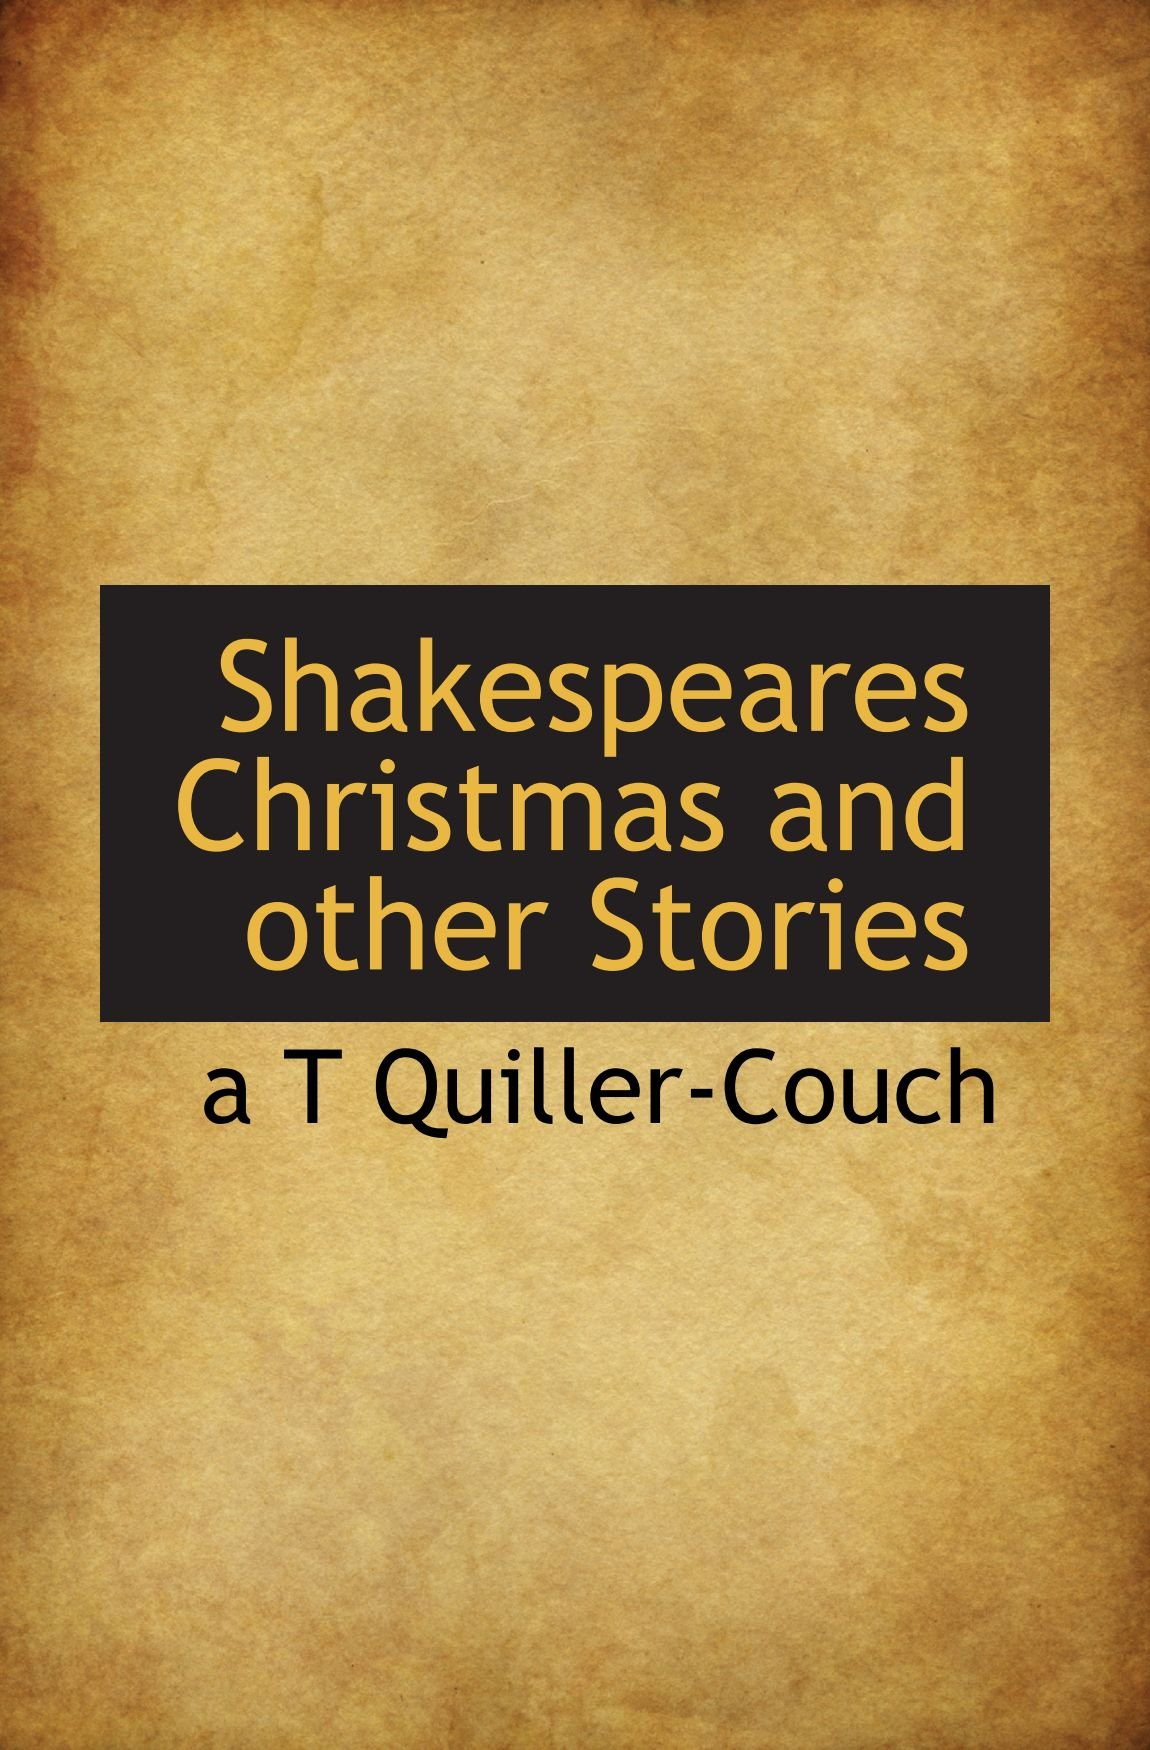 Download Shakespeares Christmas and other Stories PDF